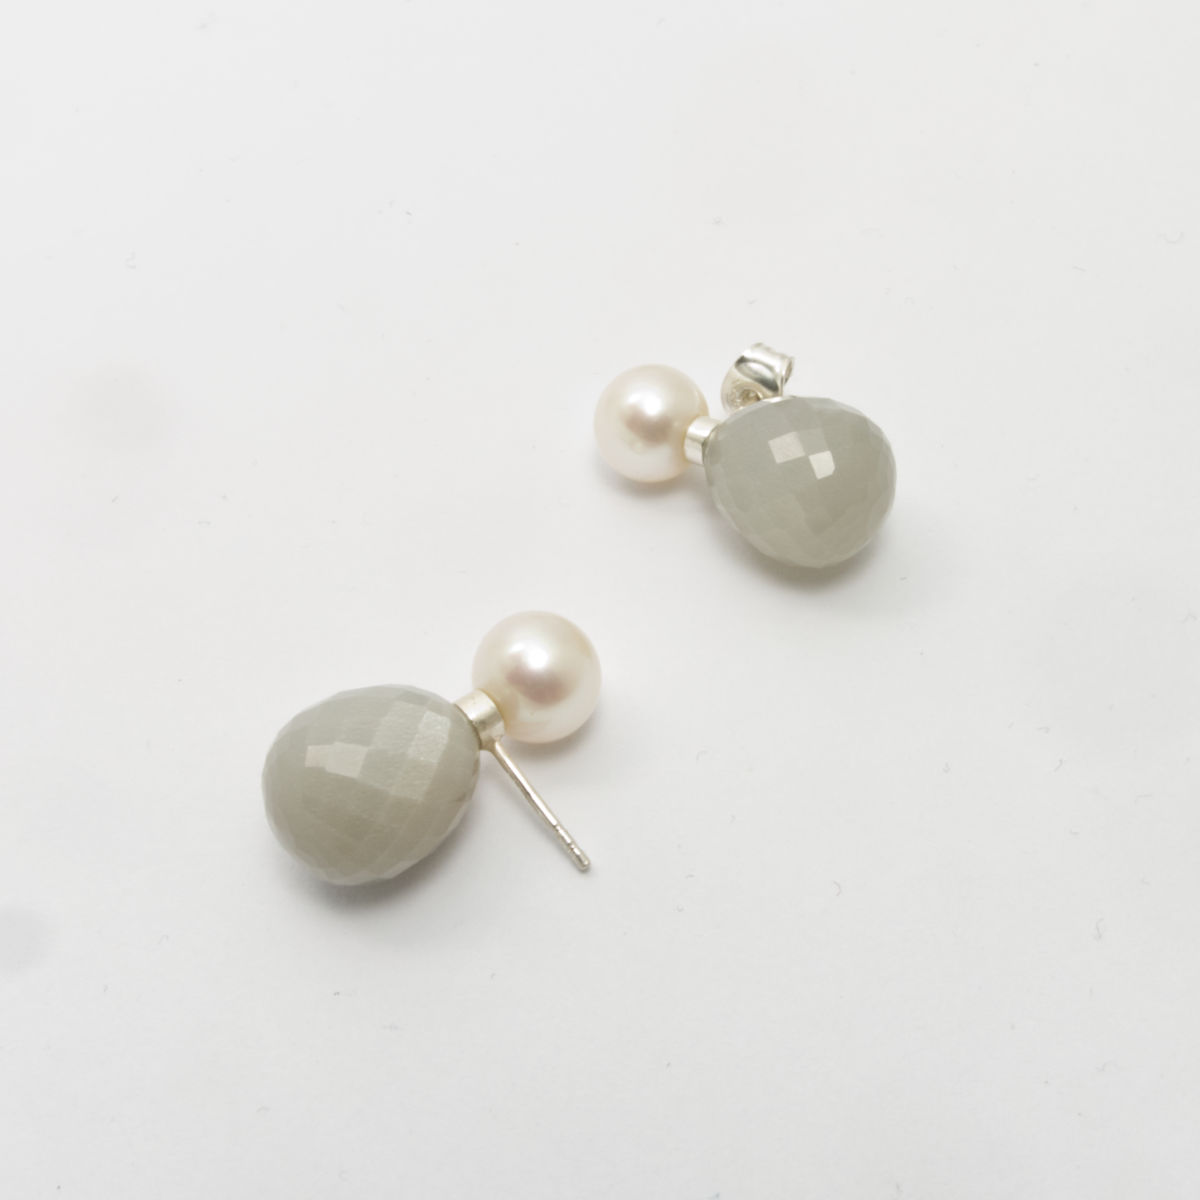 Faceted milky moon stone and white pearl earrings from In Balance collection